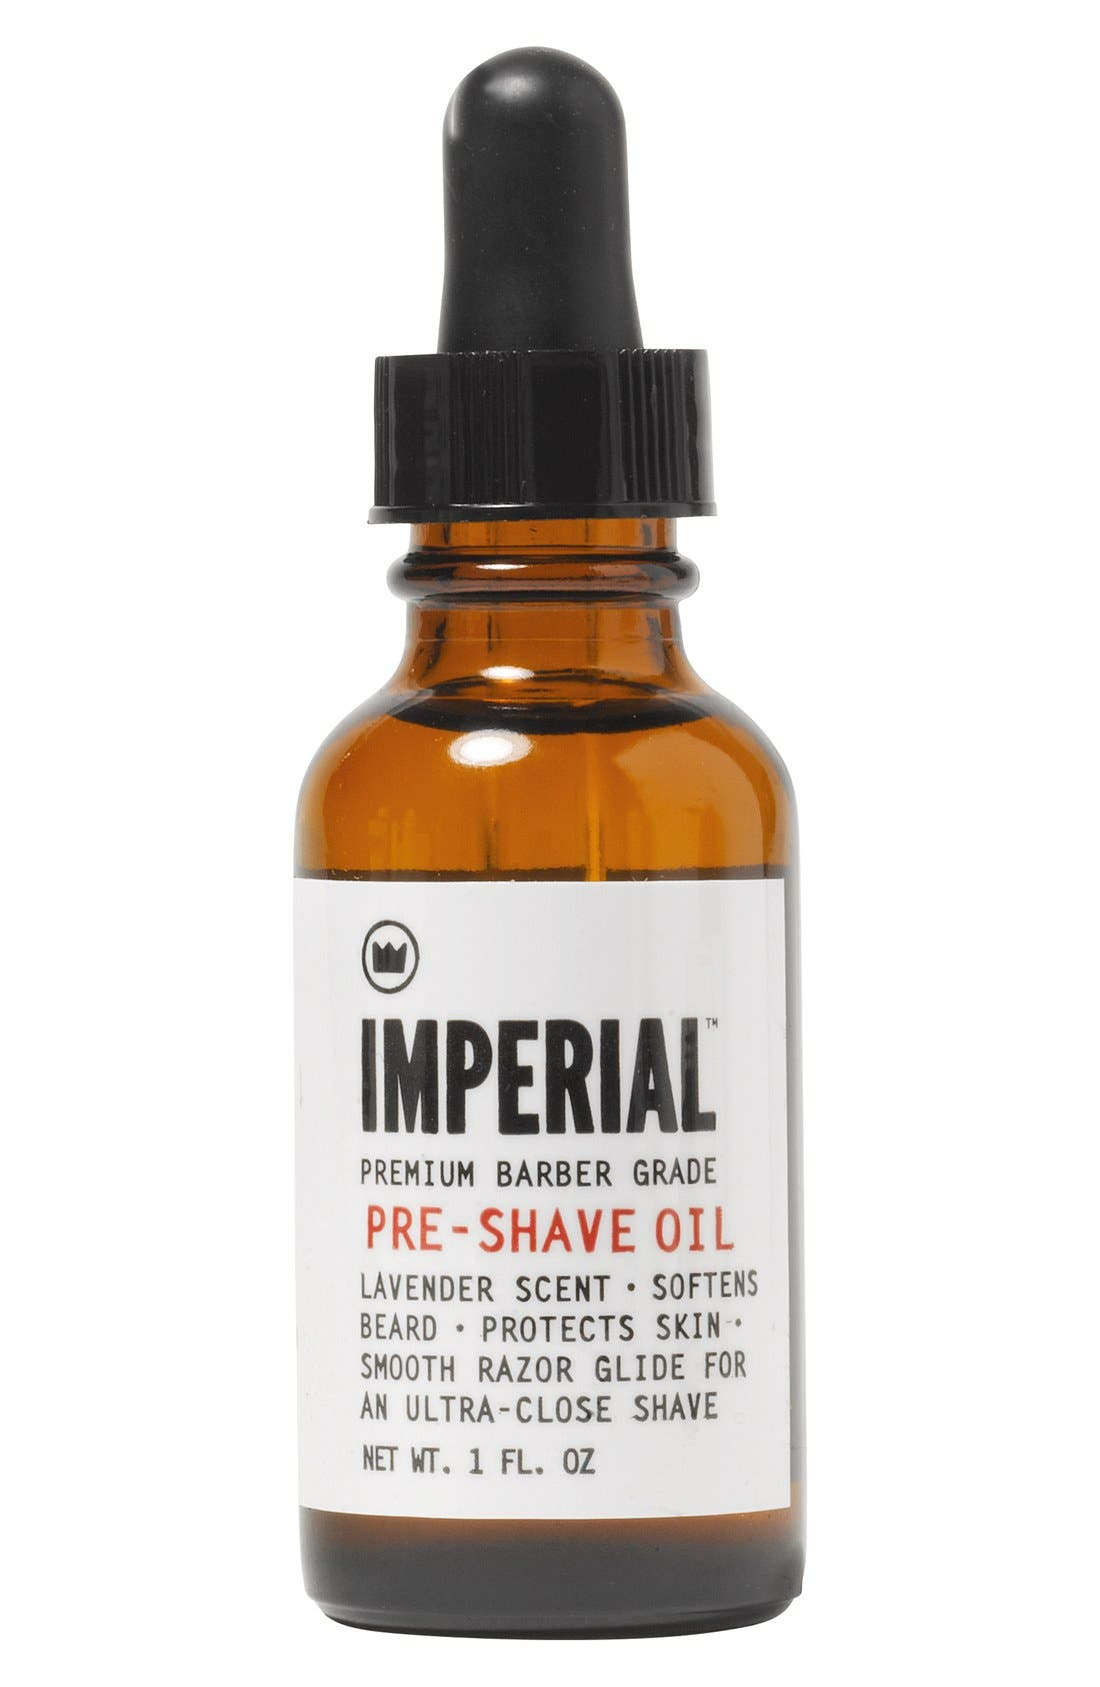 Imperial Barber Grade Products™ Pre-Shave Oil